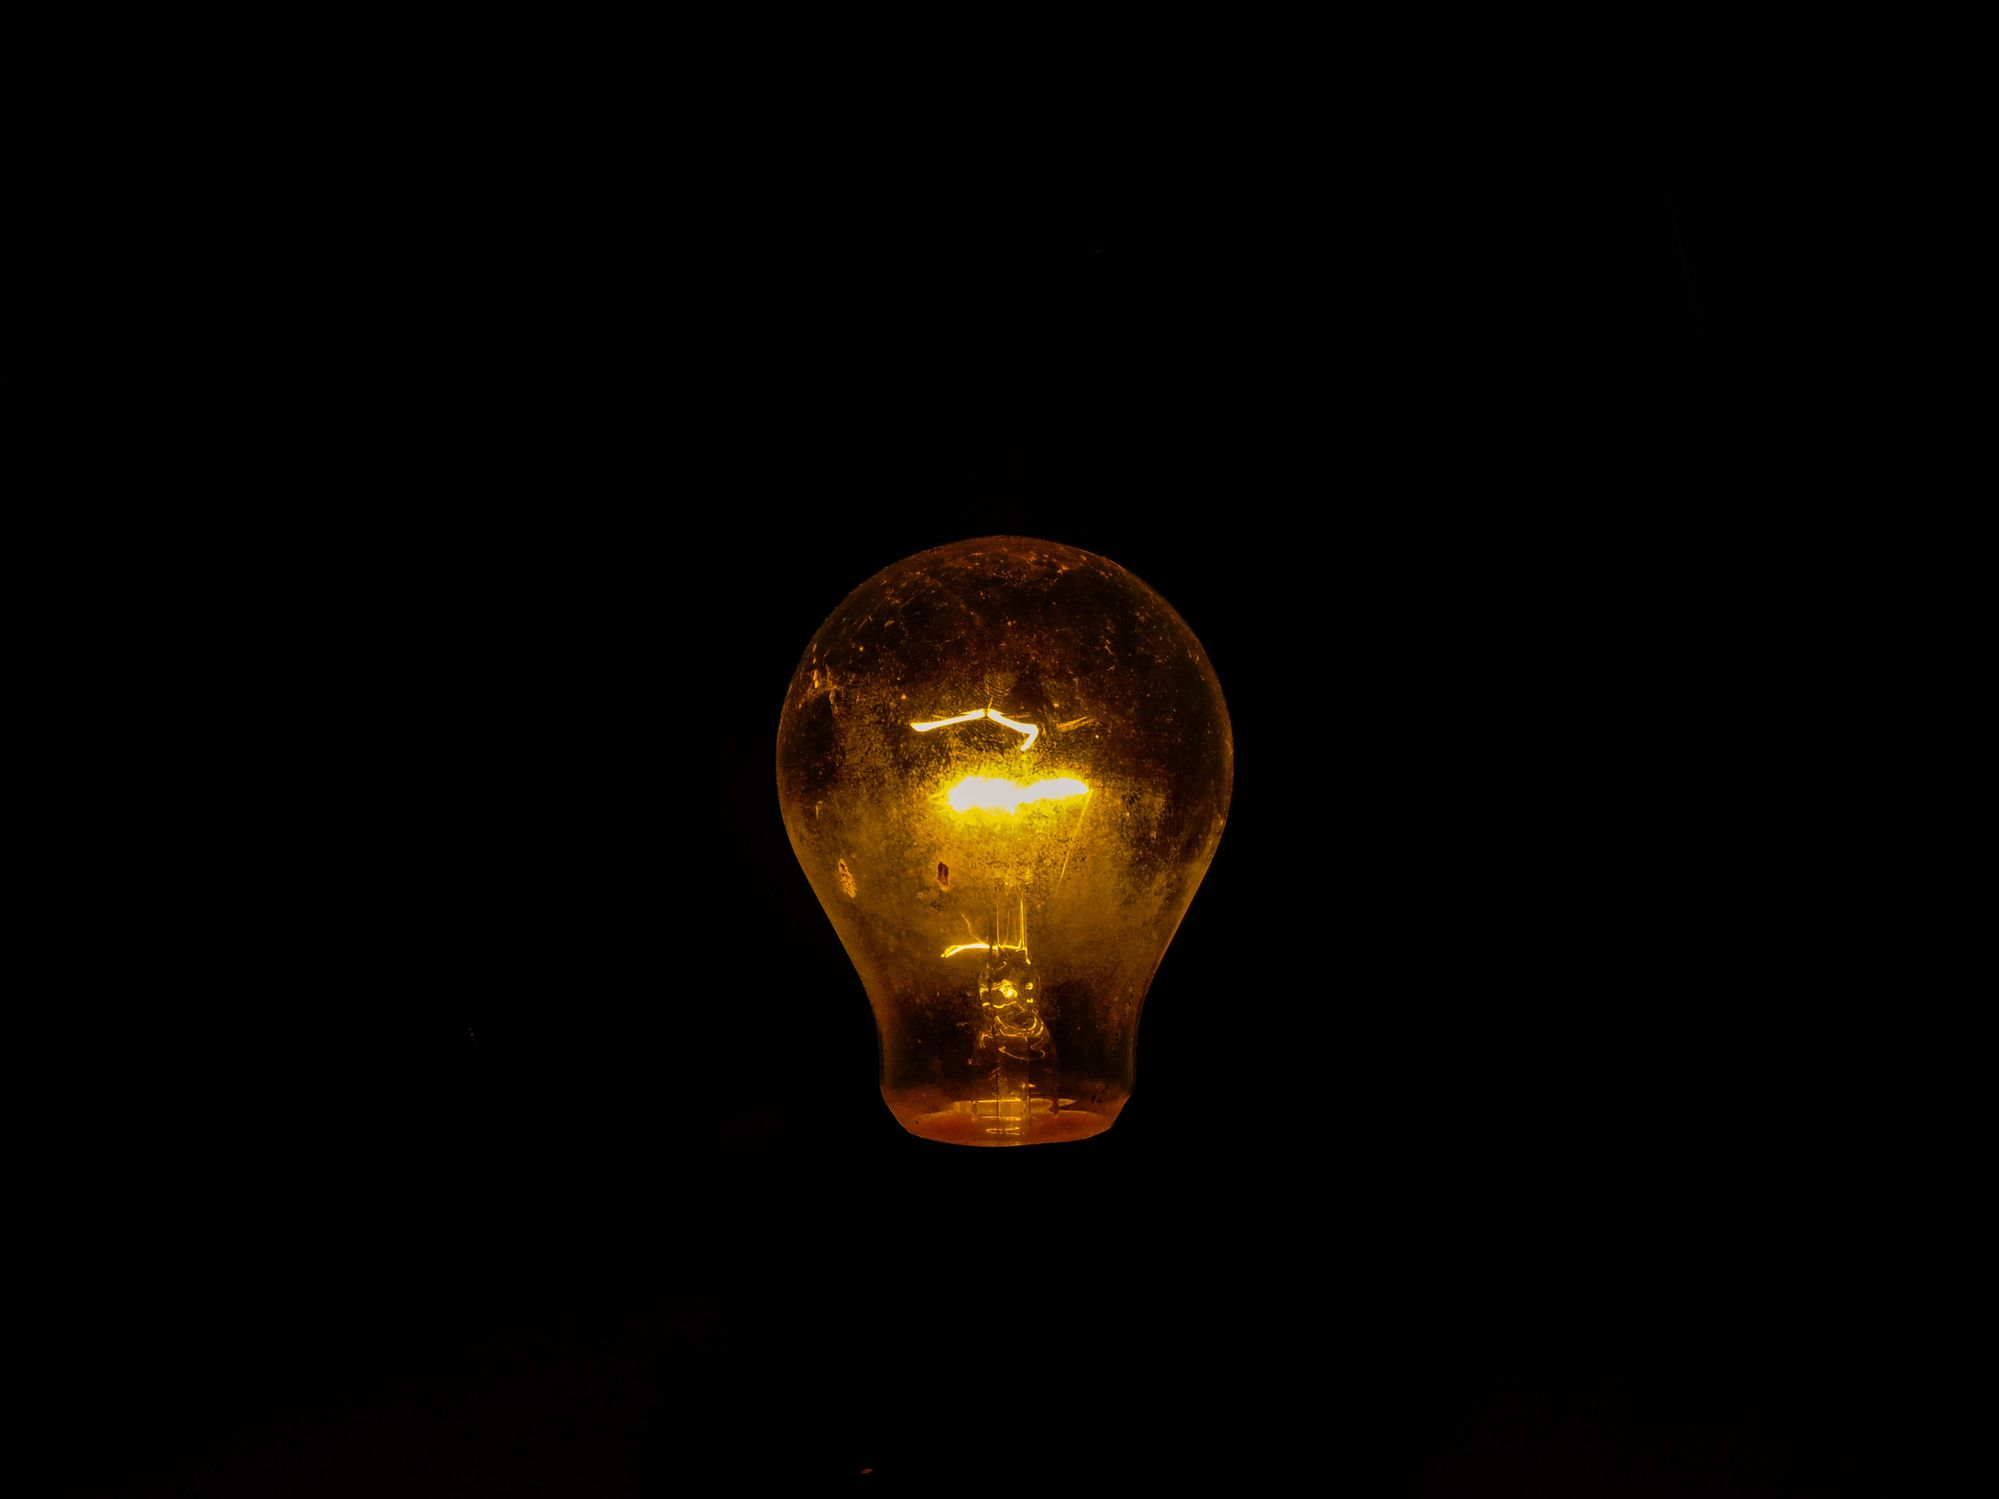 8 Reasons Why Your Light Bulbs May Be Burning Out Early